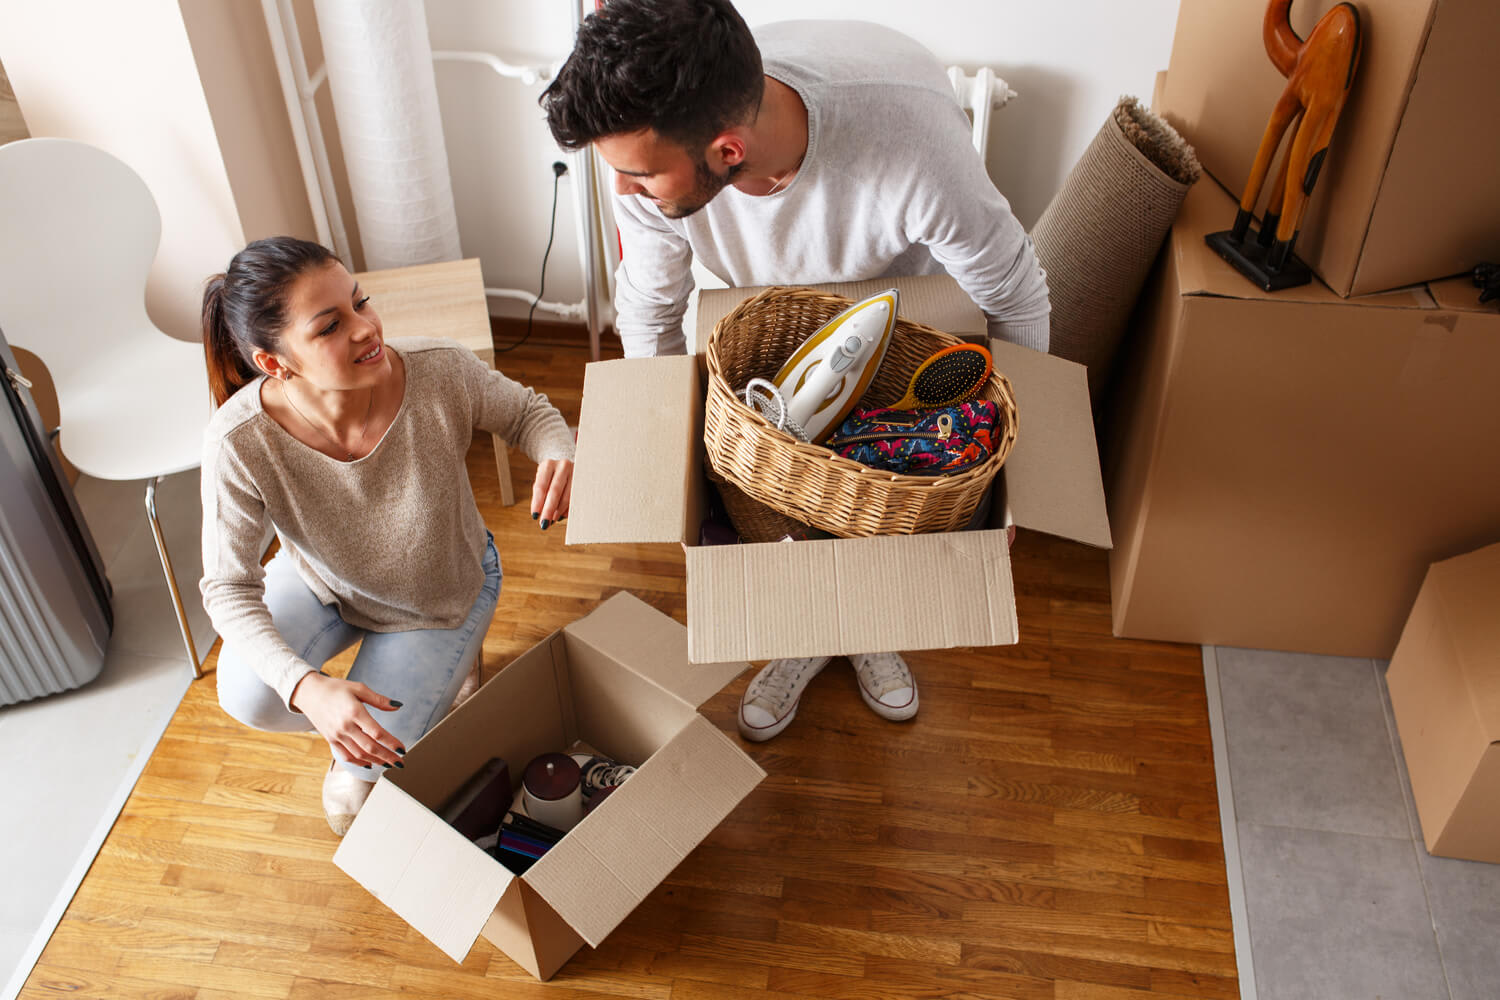 Last-Minute Moving Tips: How to Pack in a Pinch